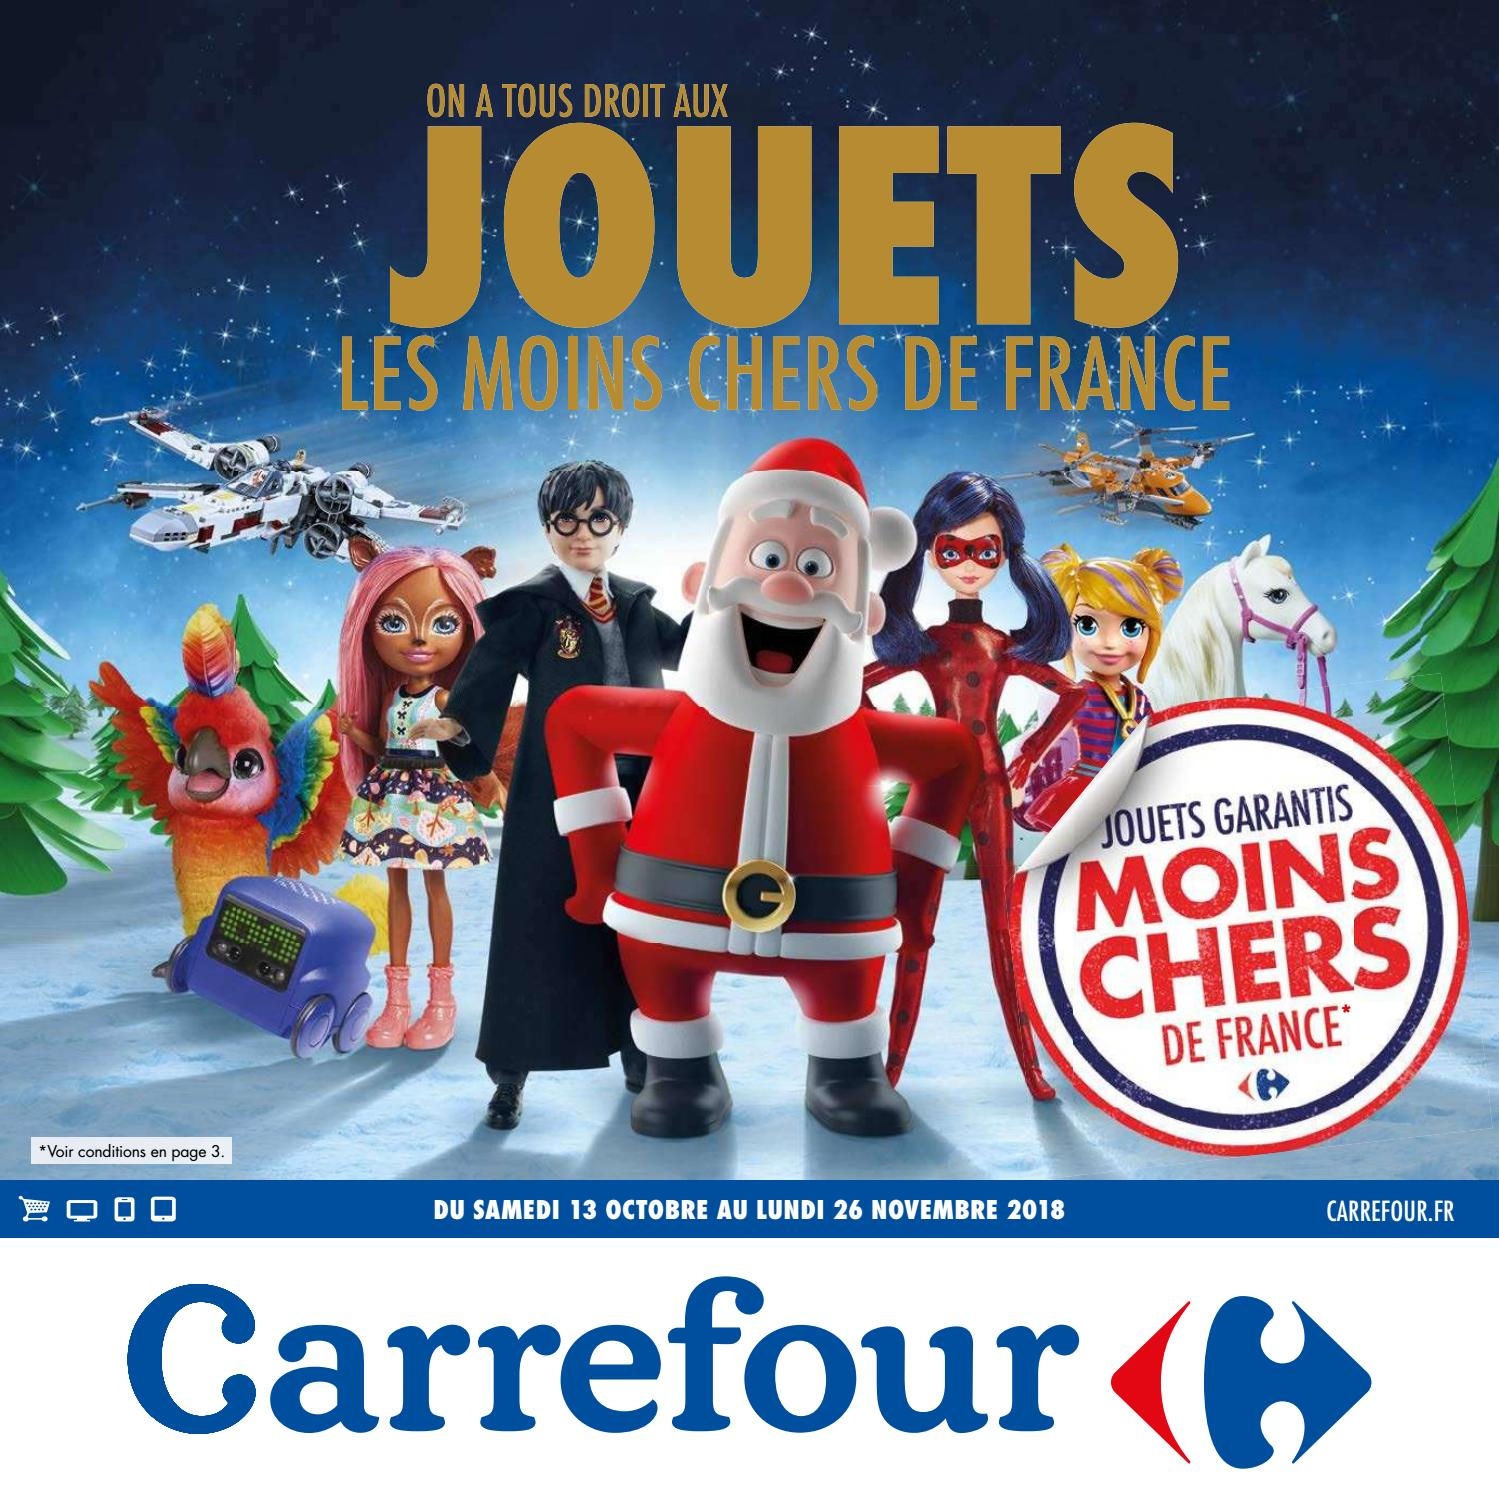 Catalogue jouets Noël 2018 - Carrefour by